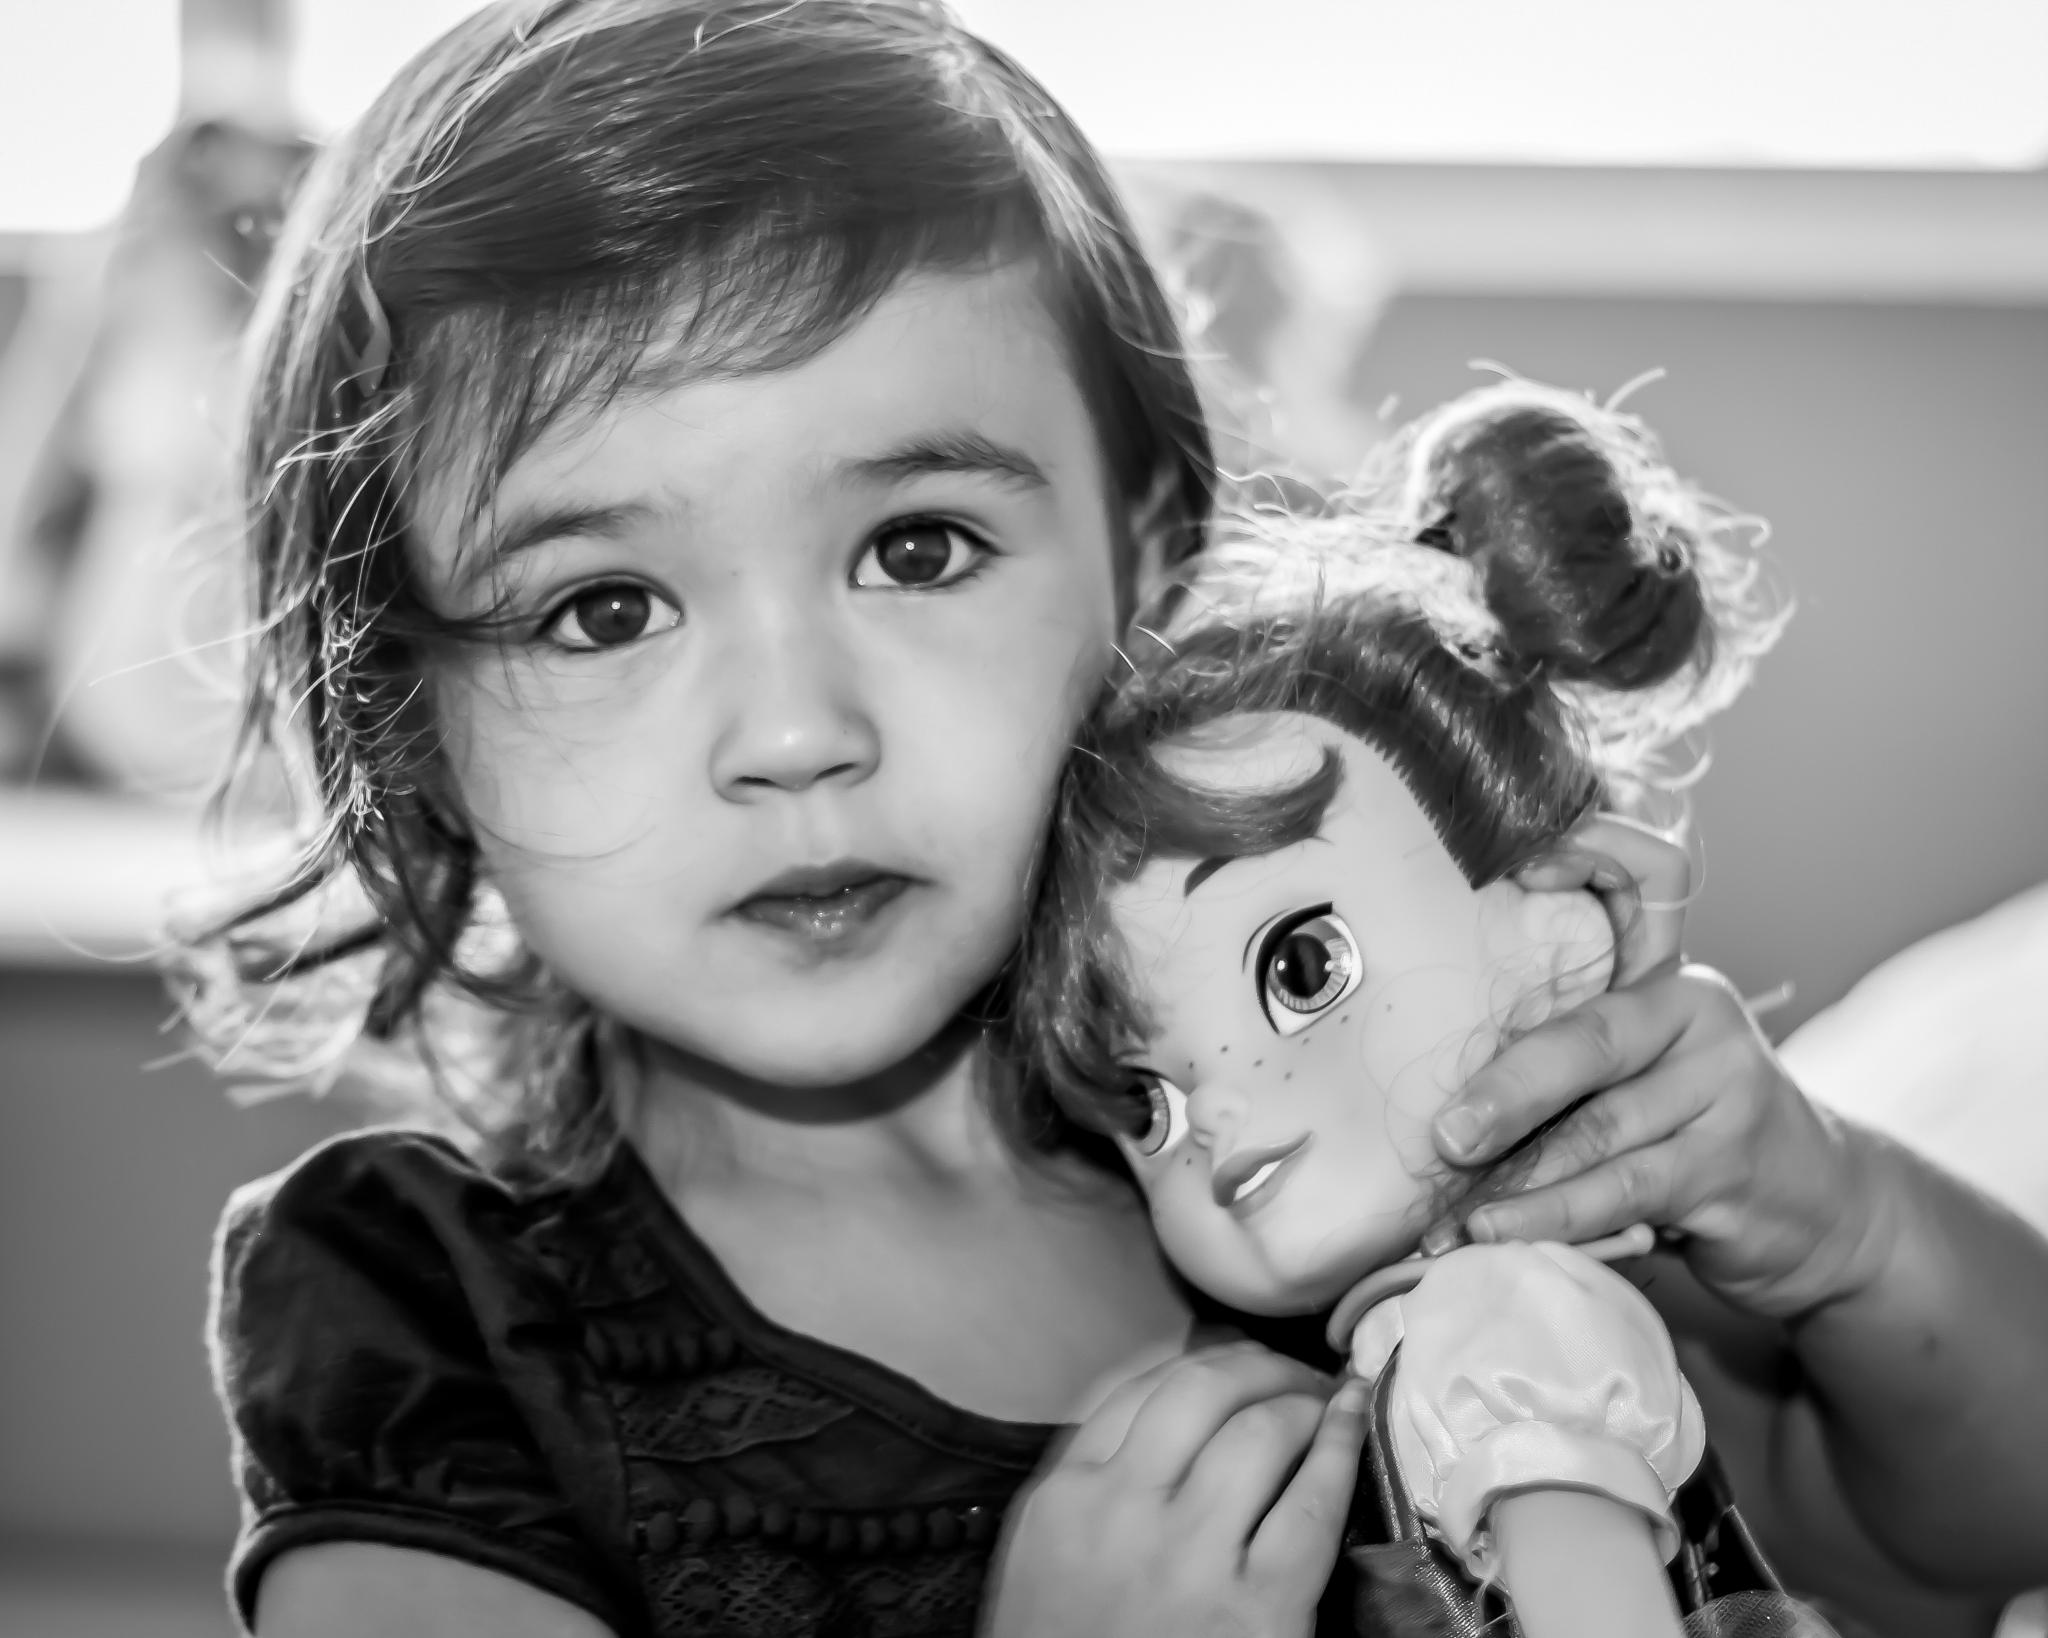 Miss Kenley & Her Dolly by Petminder